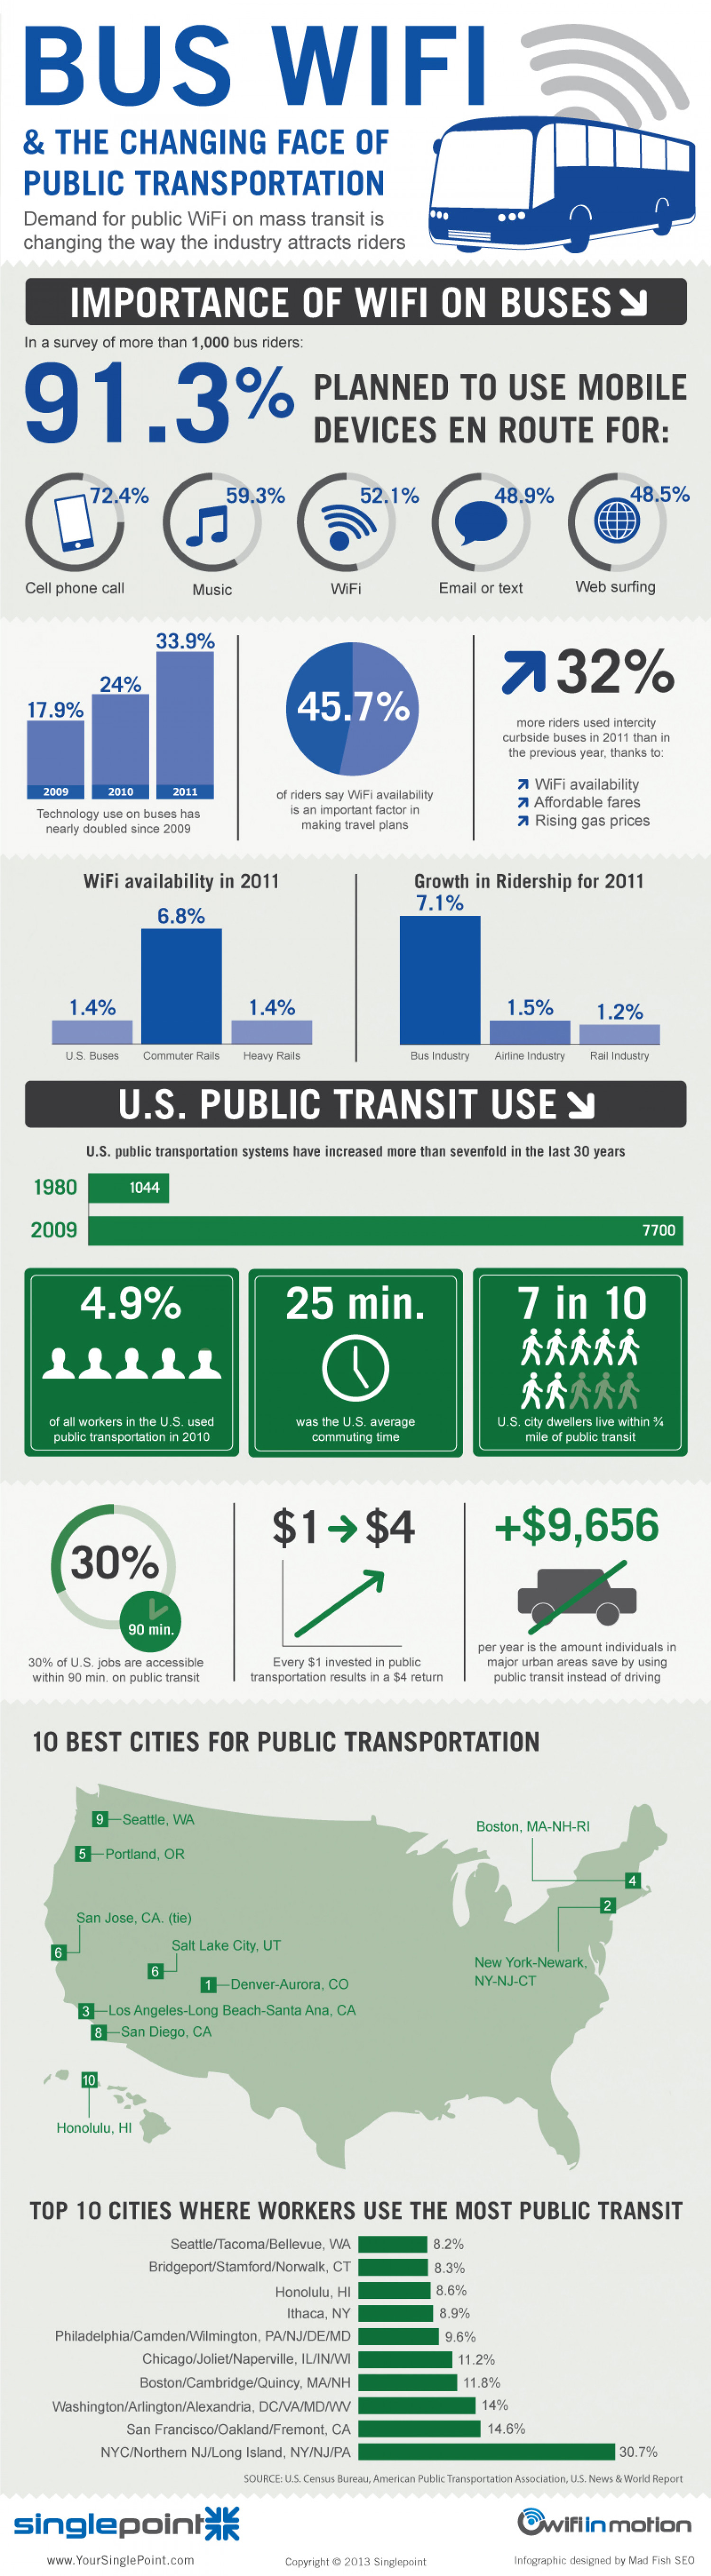 Bus WiFi and the Changing Face of Public Transportation Infographic